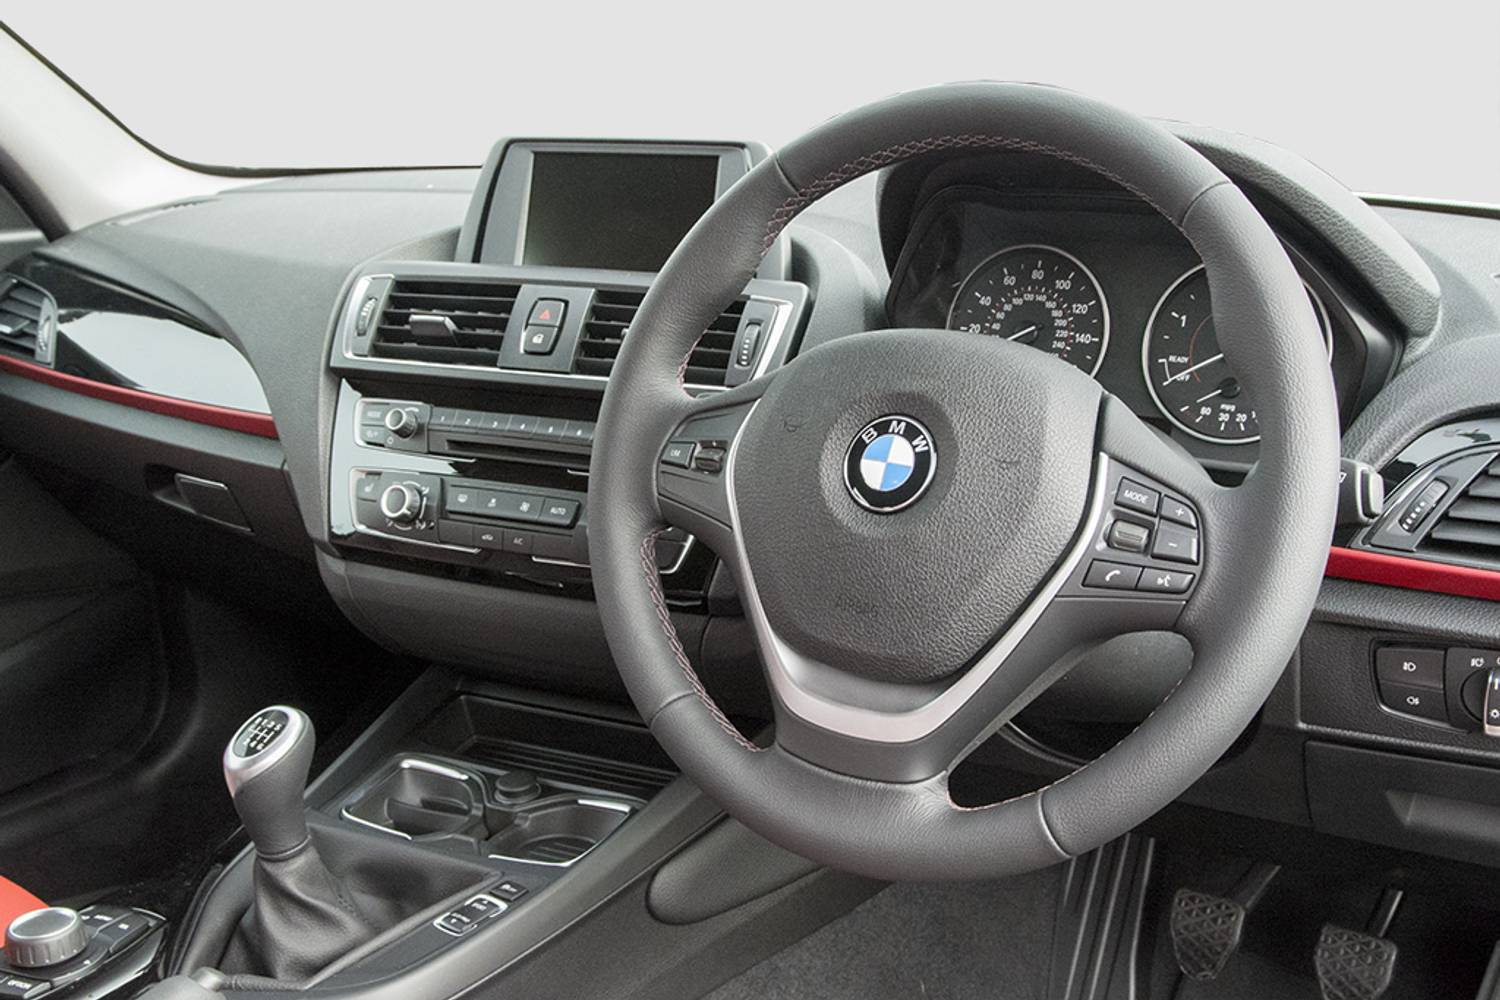 BMW 1 Series Hatchback 3dr interior